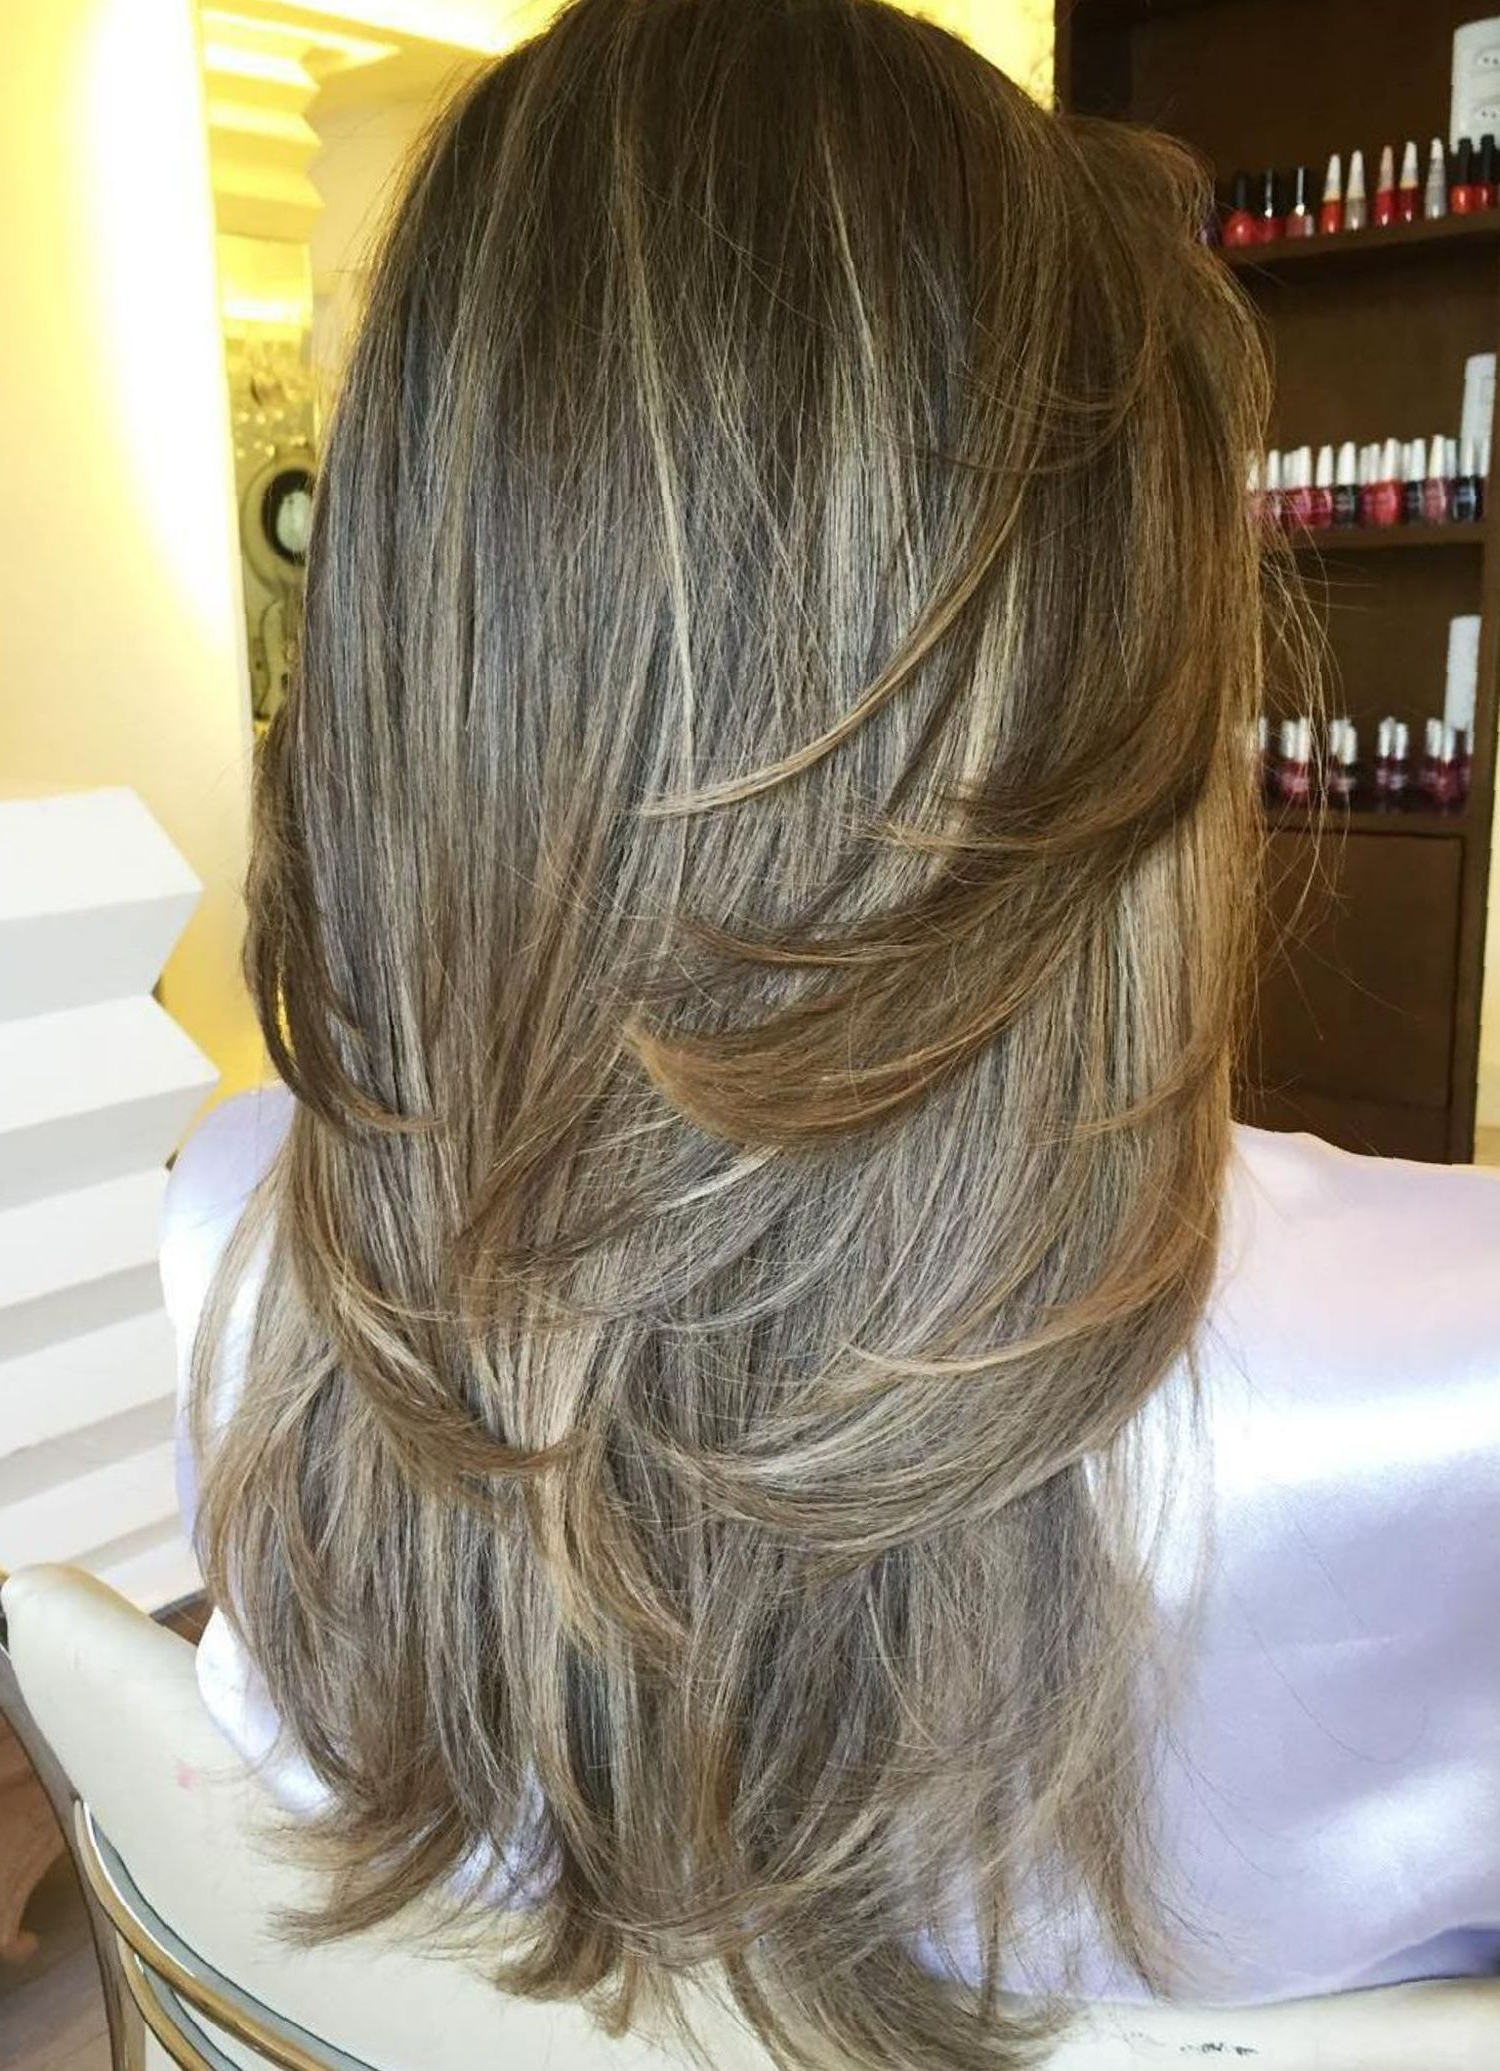 Most Popular Swoopy Layers Hairstyles For Voluminous And Dynamic Hair Intended For 80 Cute Layered Hairstyles And Cuts For Long Hair (View 7 of 20)